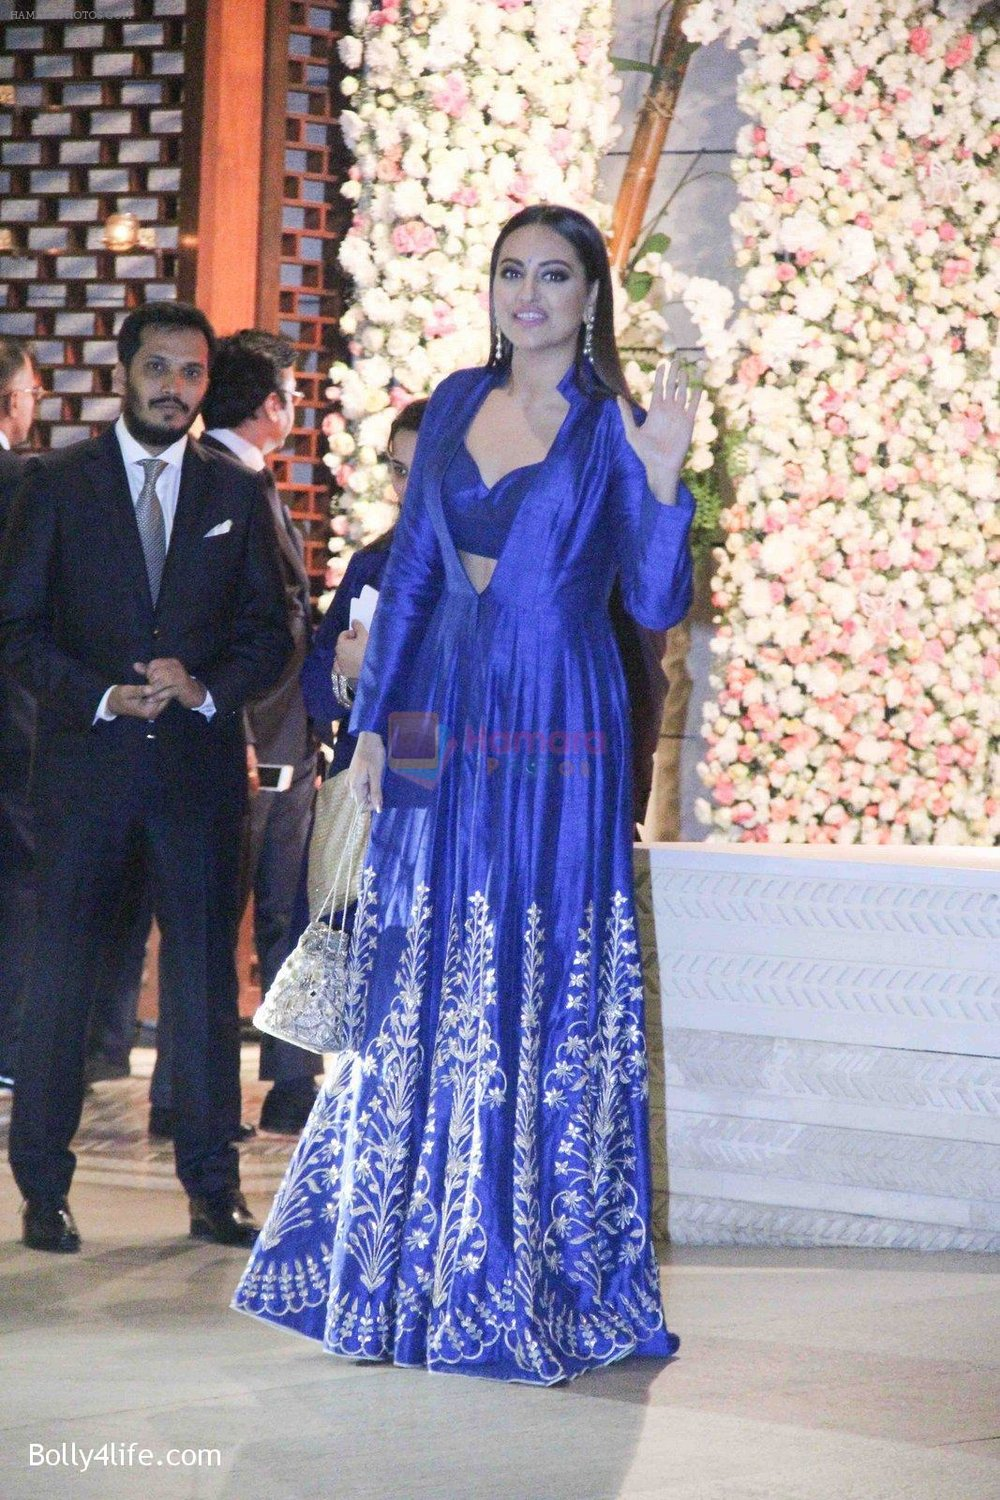 Sonakshi-Sinha-at-the-Ambanis-wedding-party-of-their-niece-Isheta-Salgaoncar-1.jpg